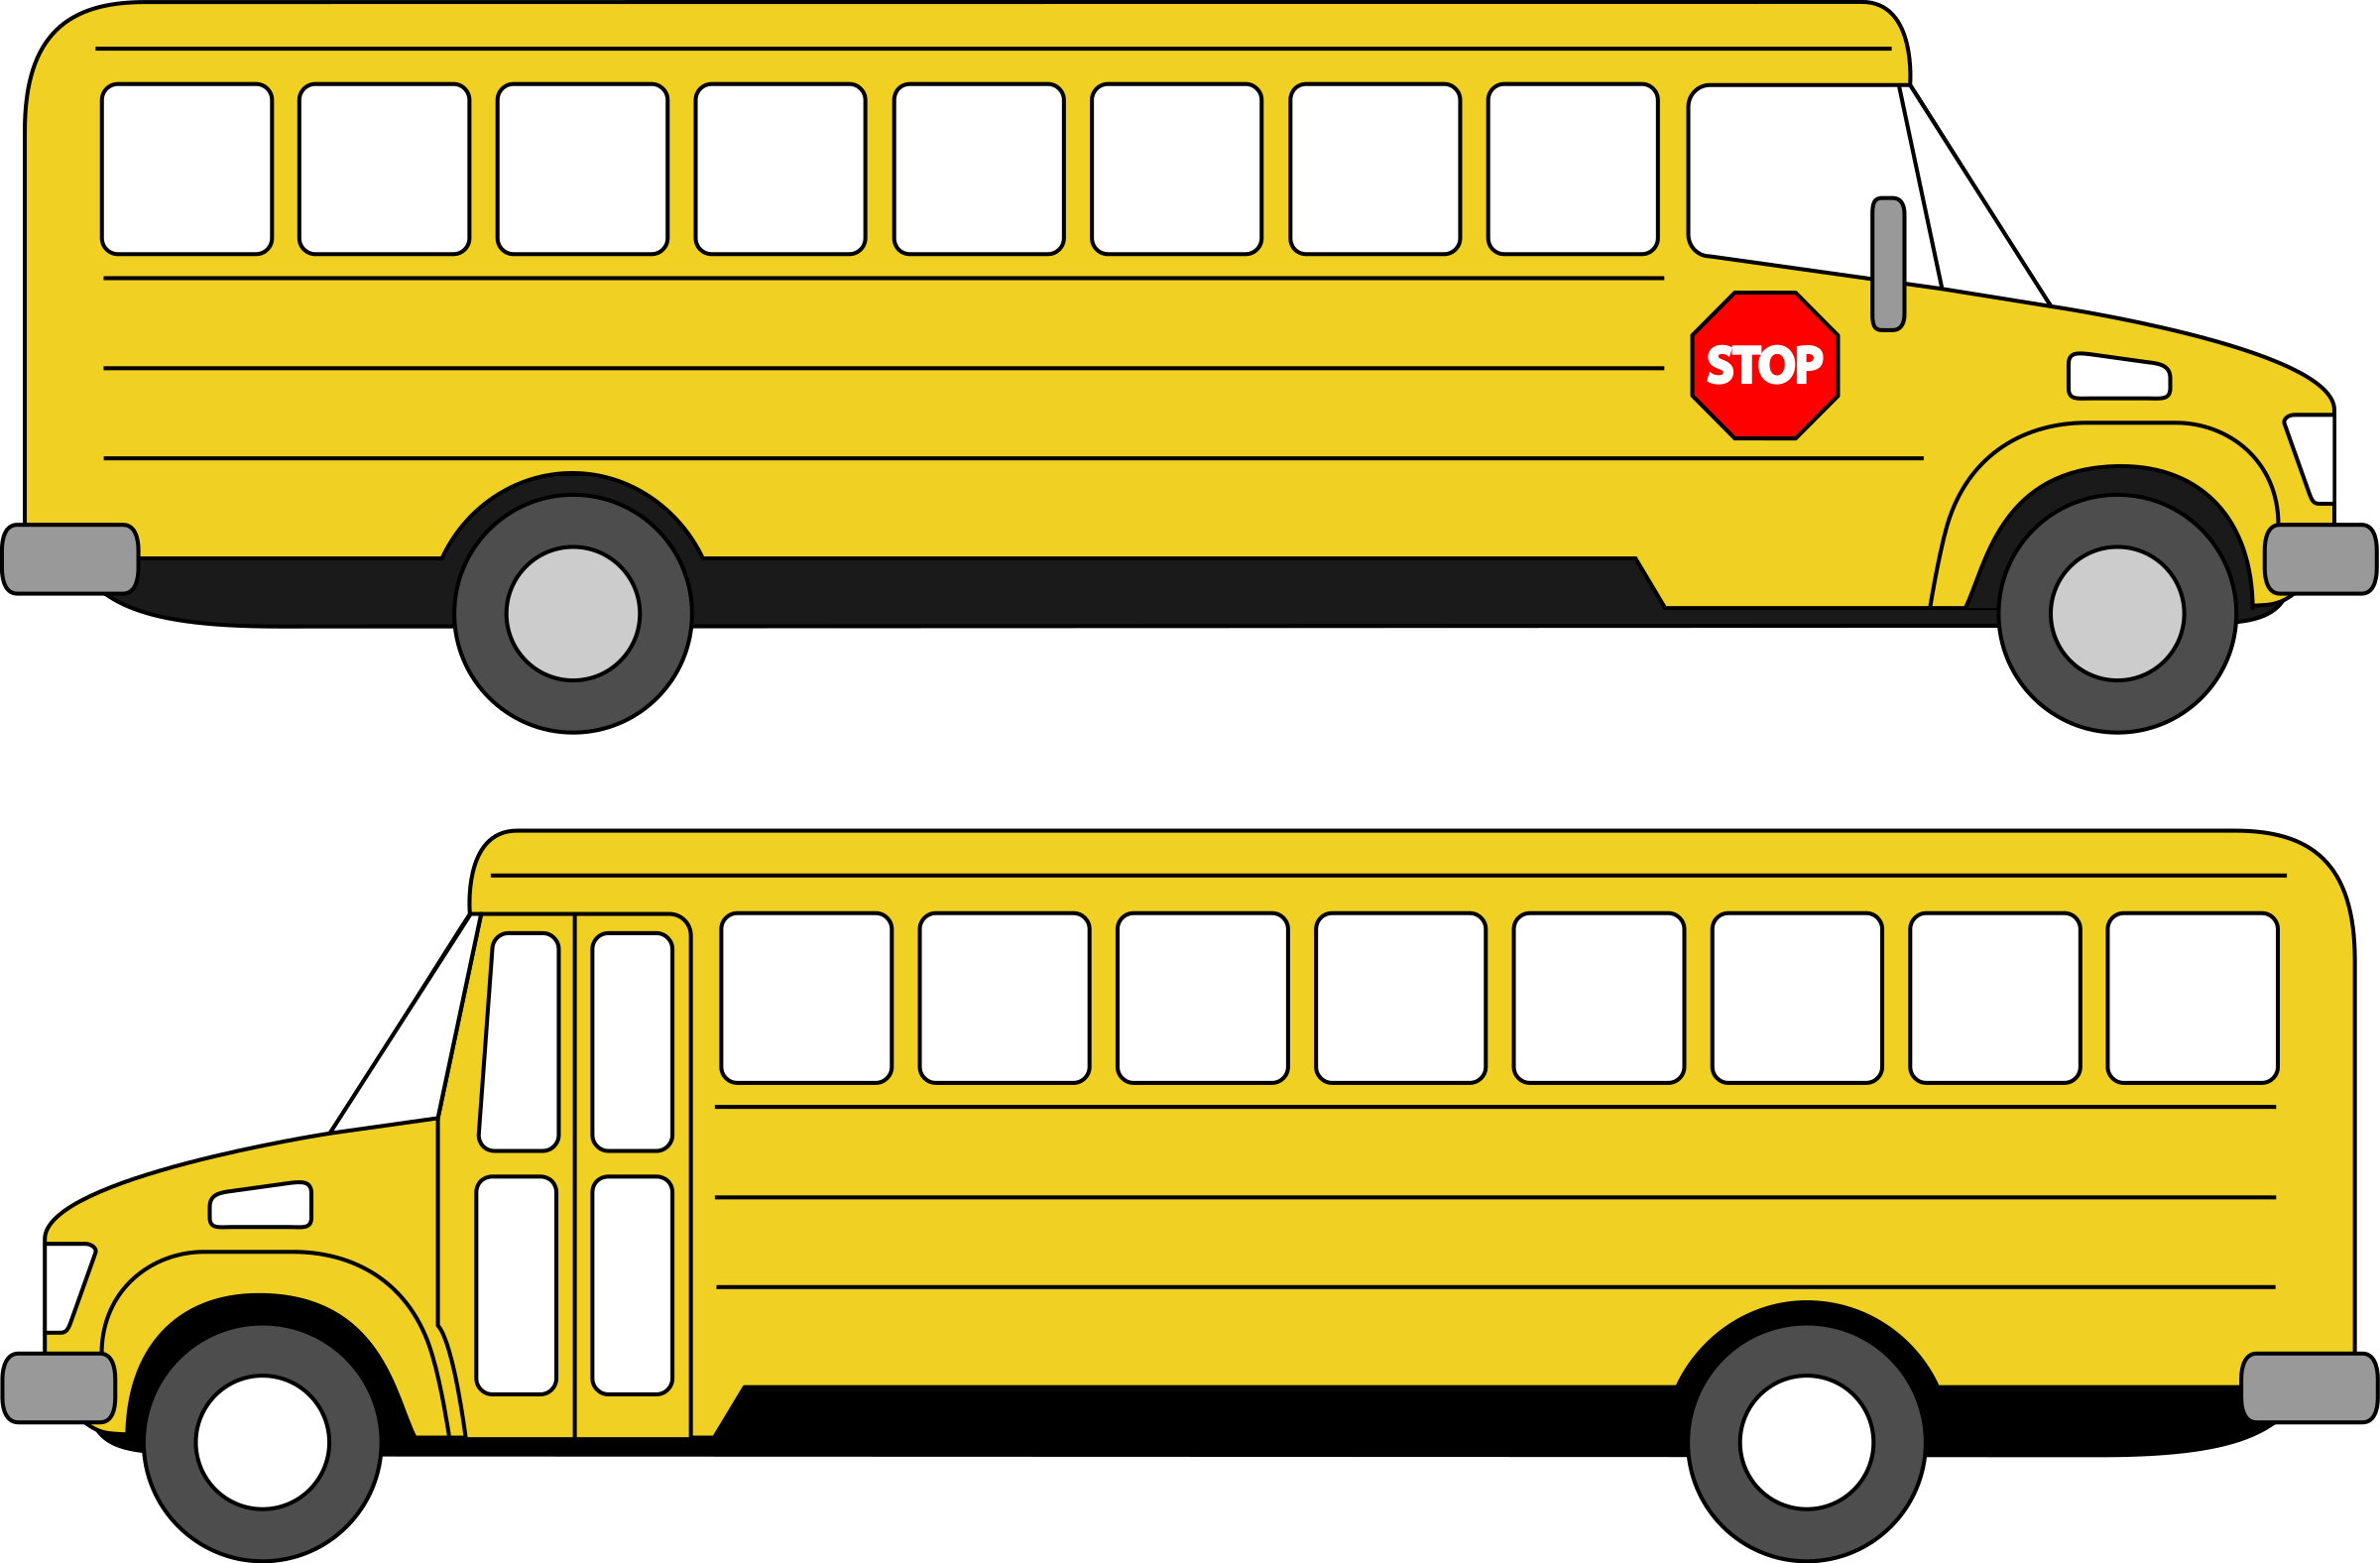 school bus safety clipart at getdrawings com free for personal use rh getdrawings com Magic School Bus Clip Art School Bus Safety Coloring Pages